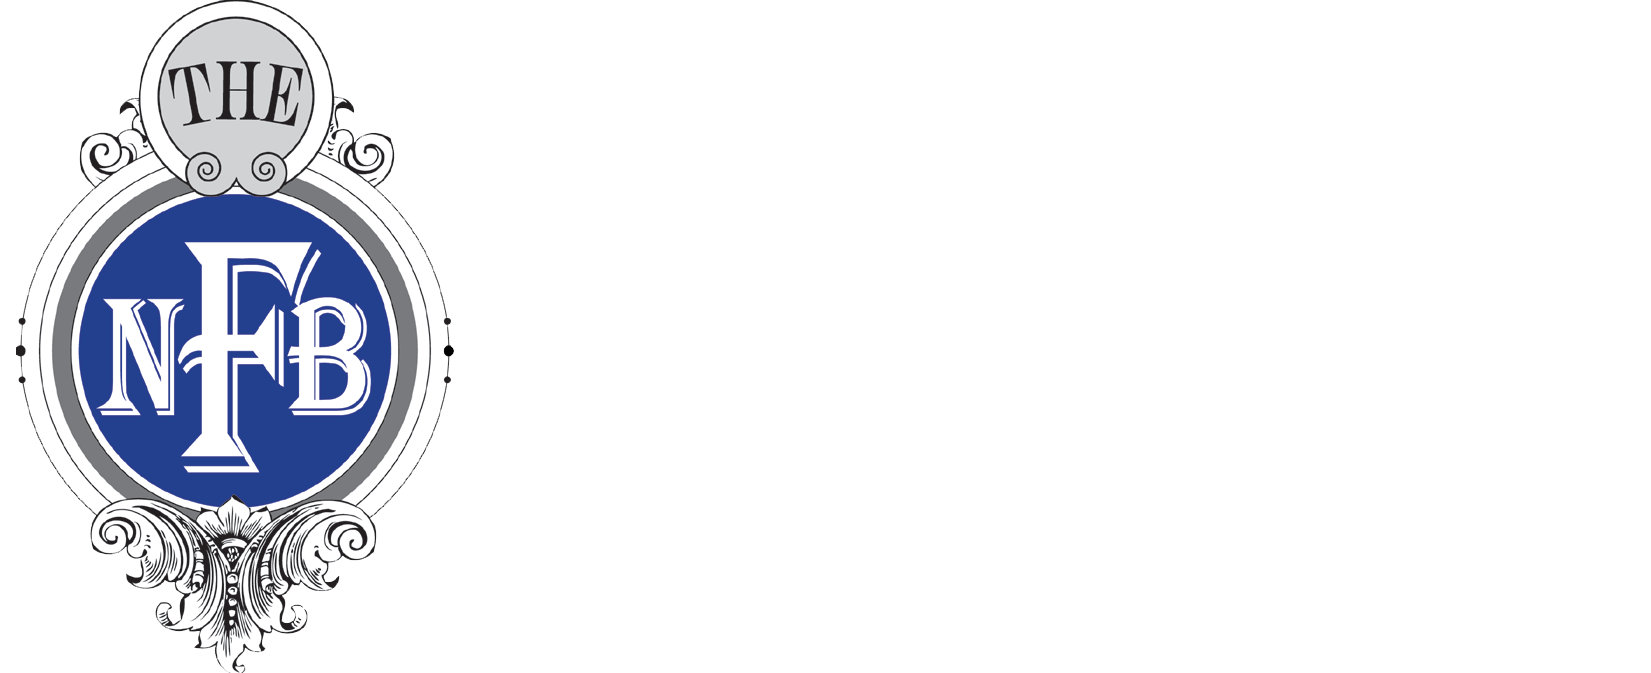 First National Bank of Blanchester Logo